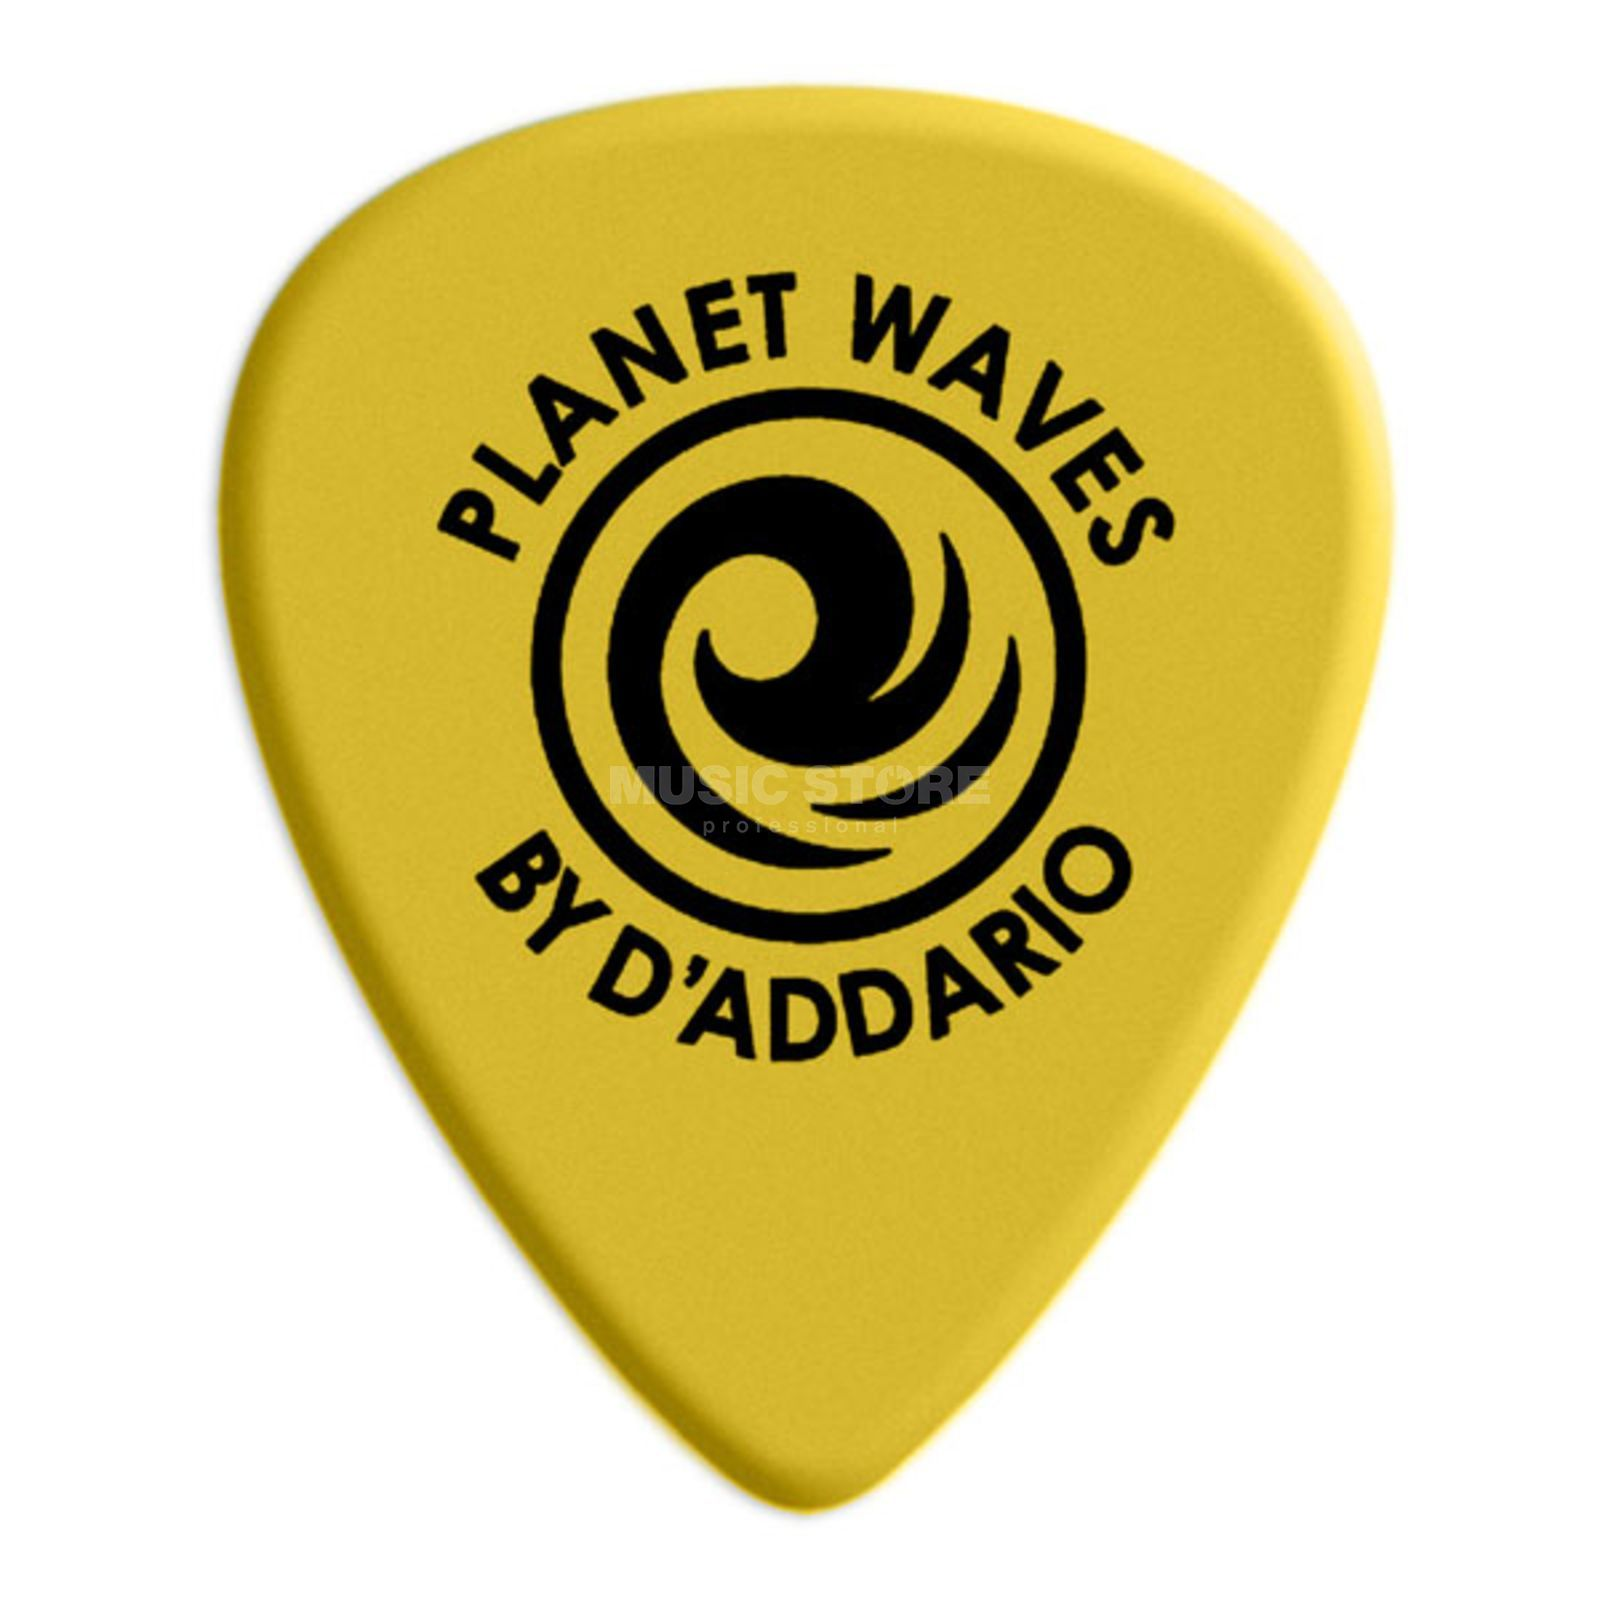 D'Addario Planet Waves Cortex Picks 0,70mm 10-Pack, 1UCT4-10 Produktbild